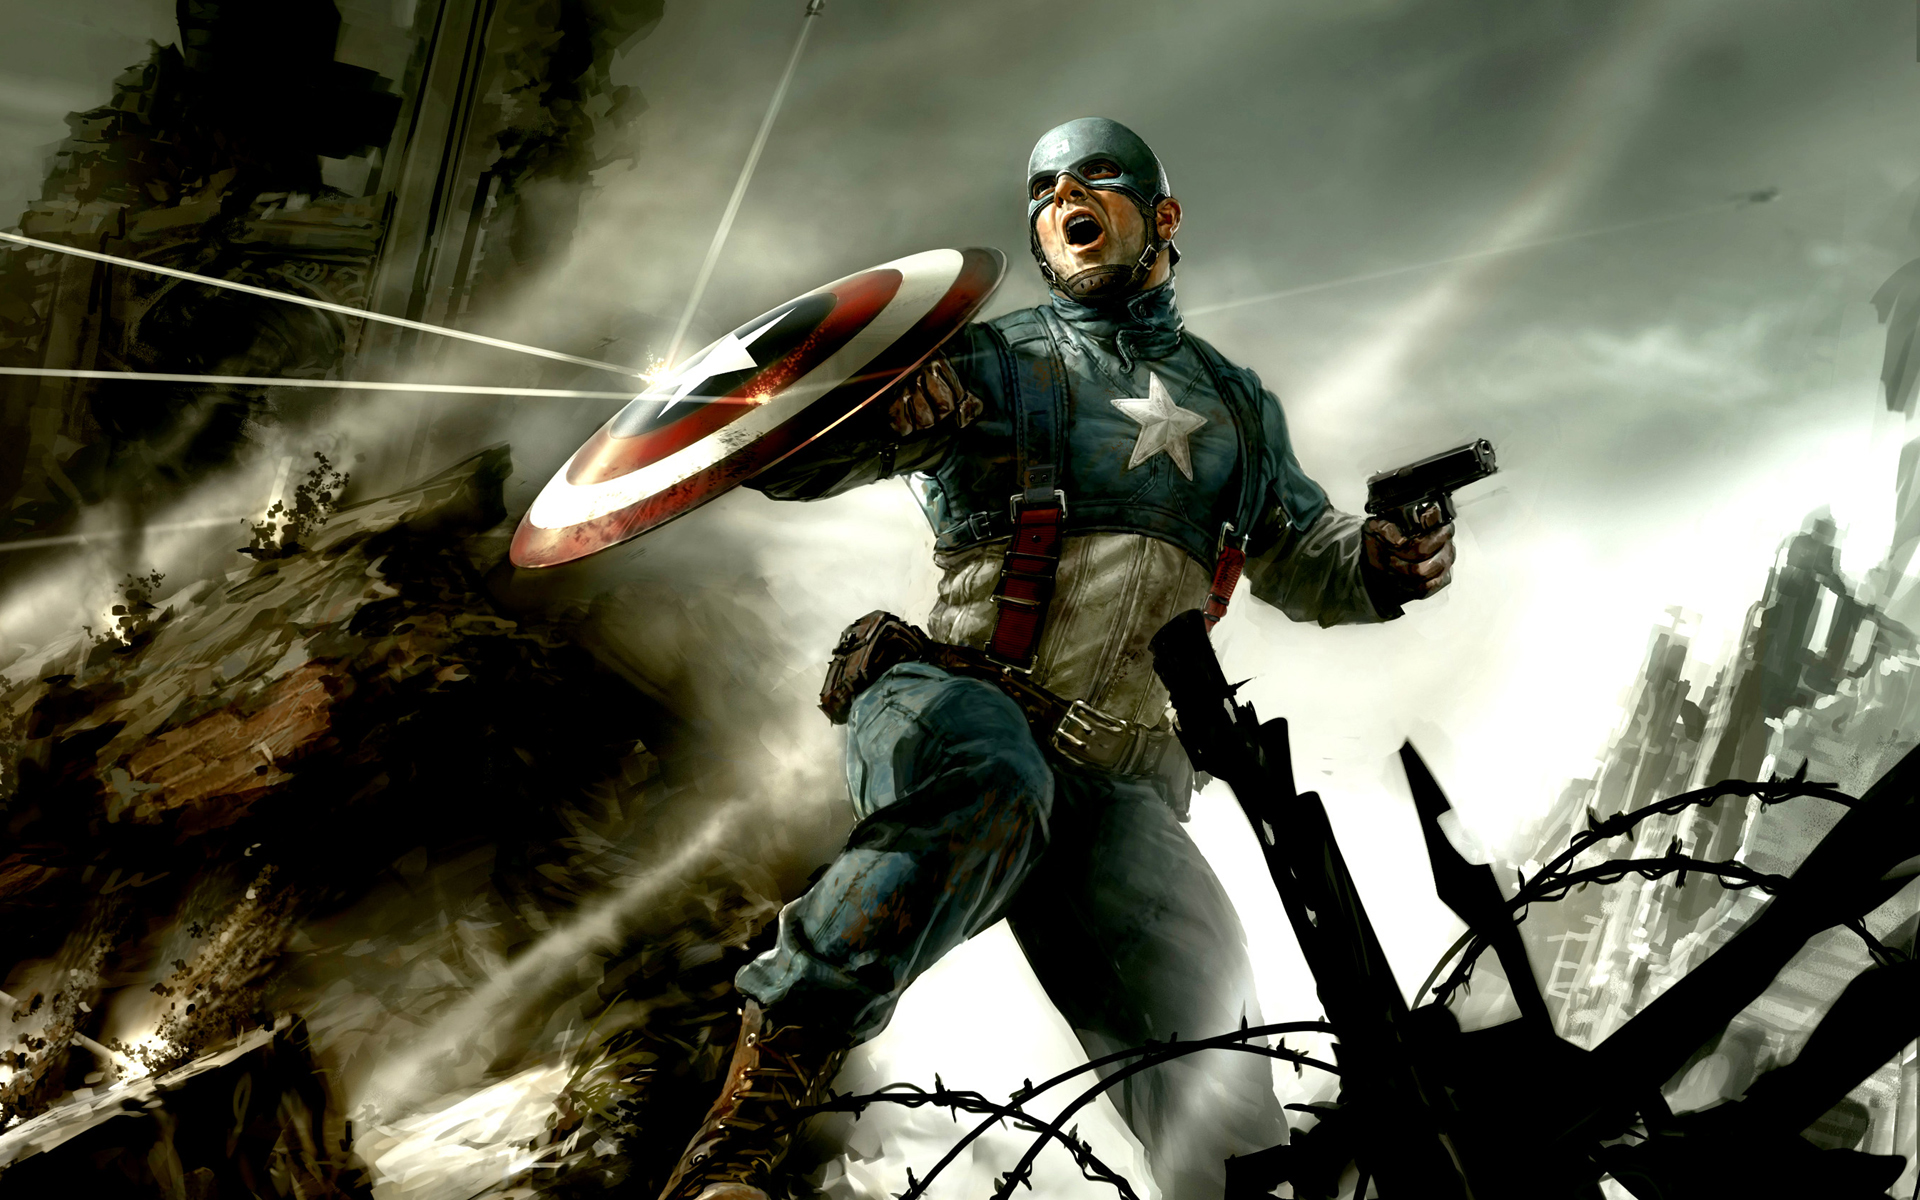 captain america hd wallpapers free download. Black Bedroom Furniture Sets. Home Design Ideas